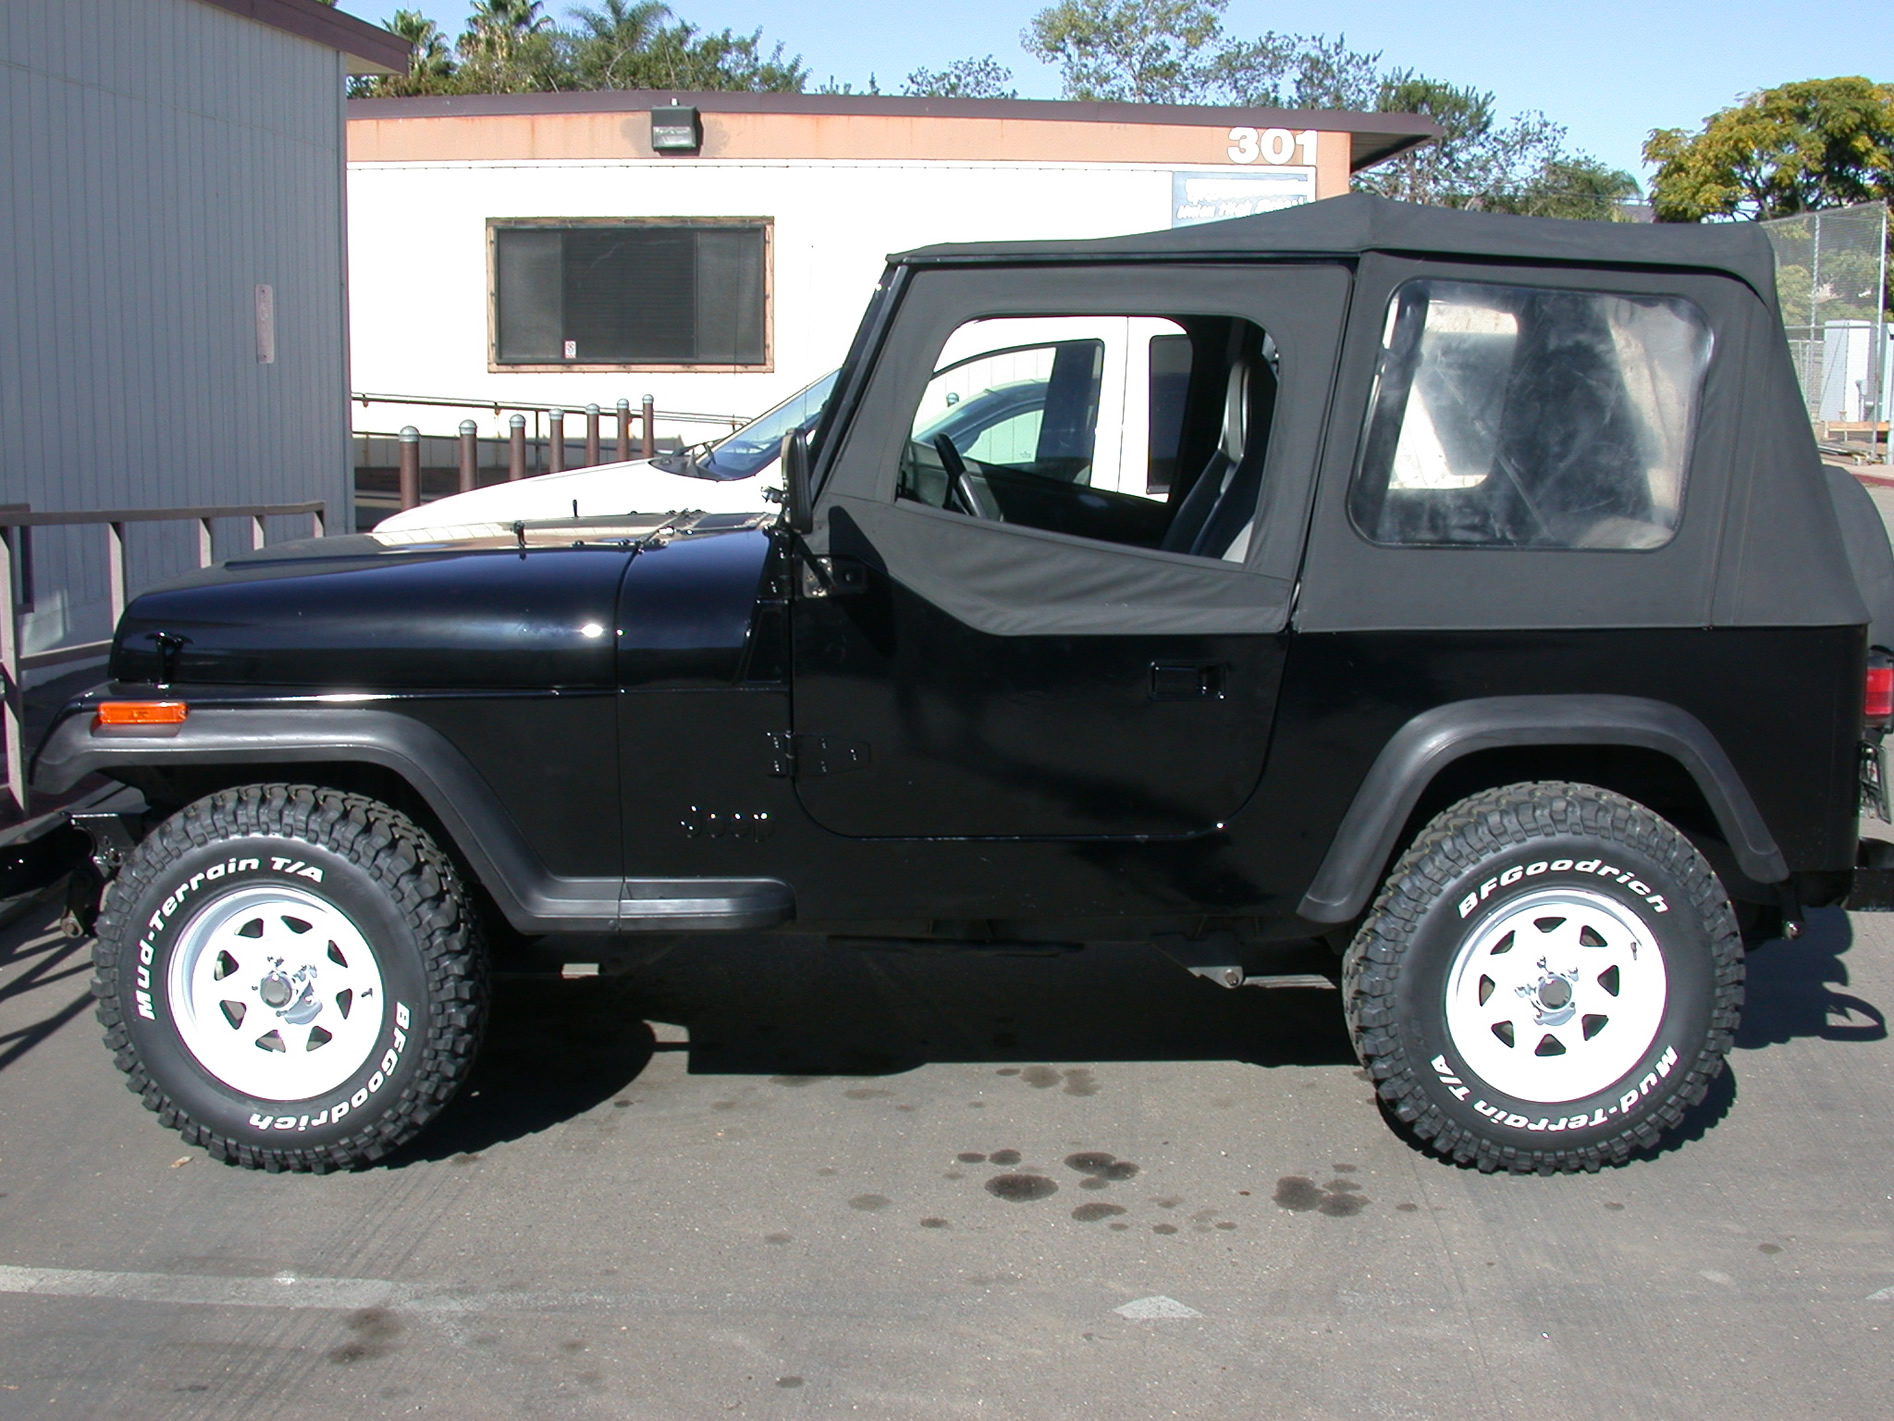 file:1995 jeep wrangler yj (left side) - wikimedia commons